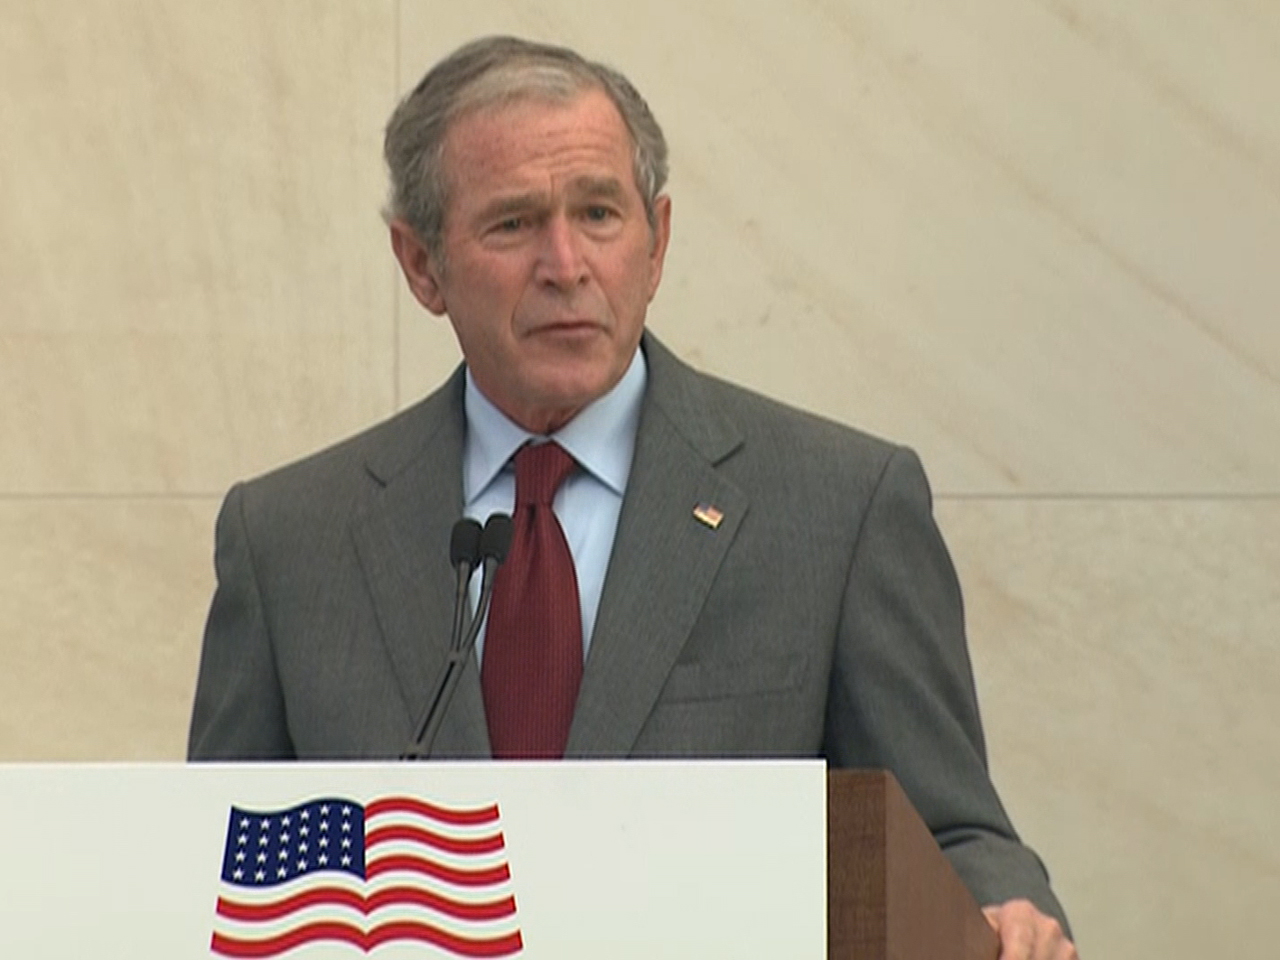 Facts About George W Bush 2 Desktop Background